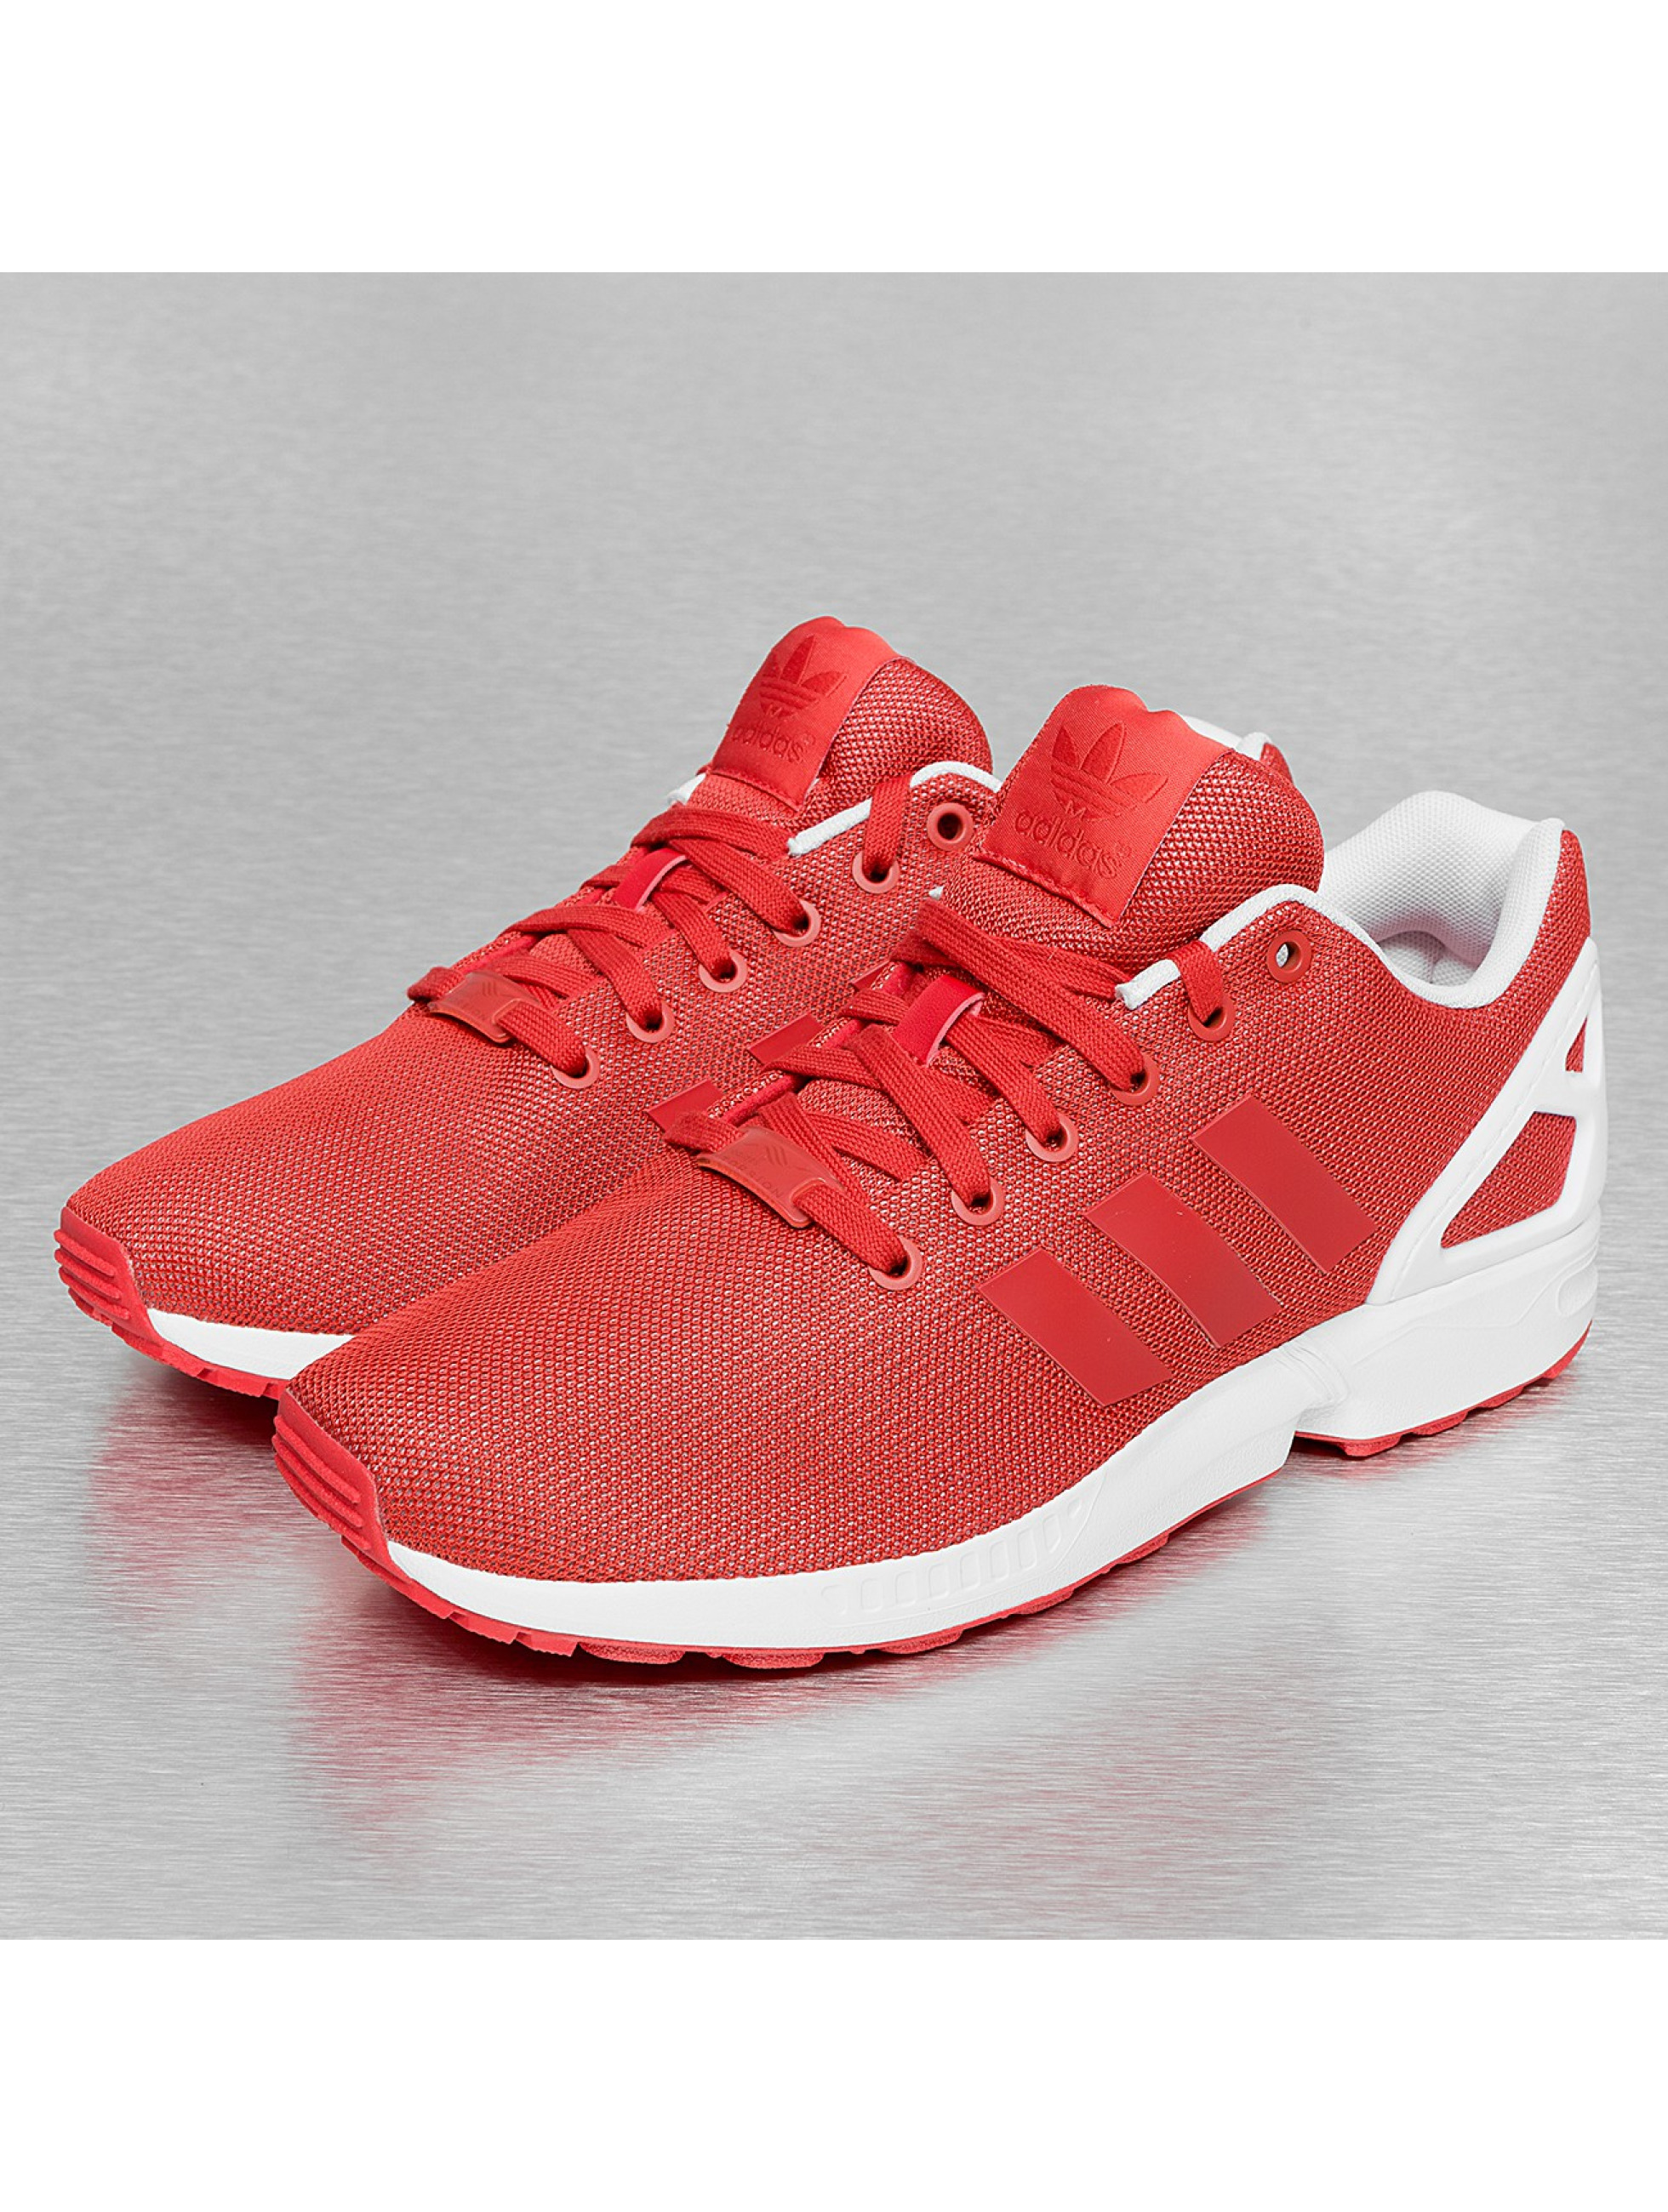 Adidas Sneakers Rood Dames